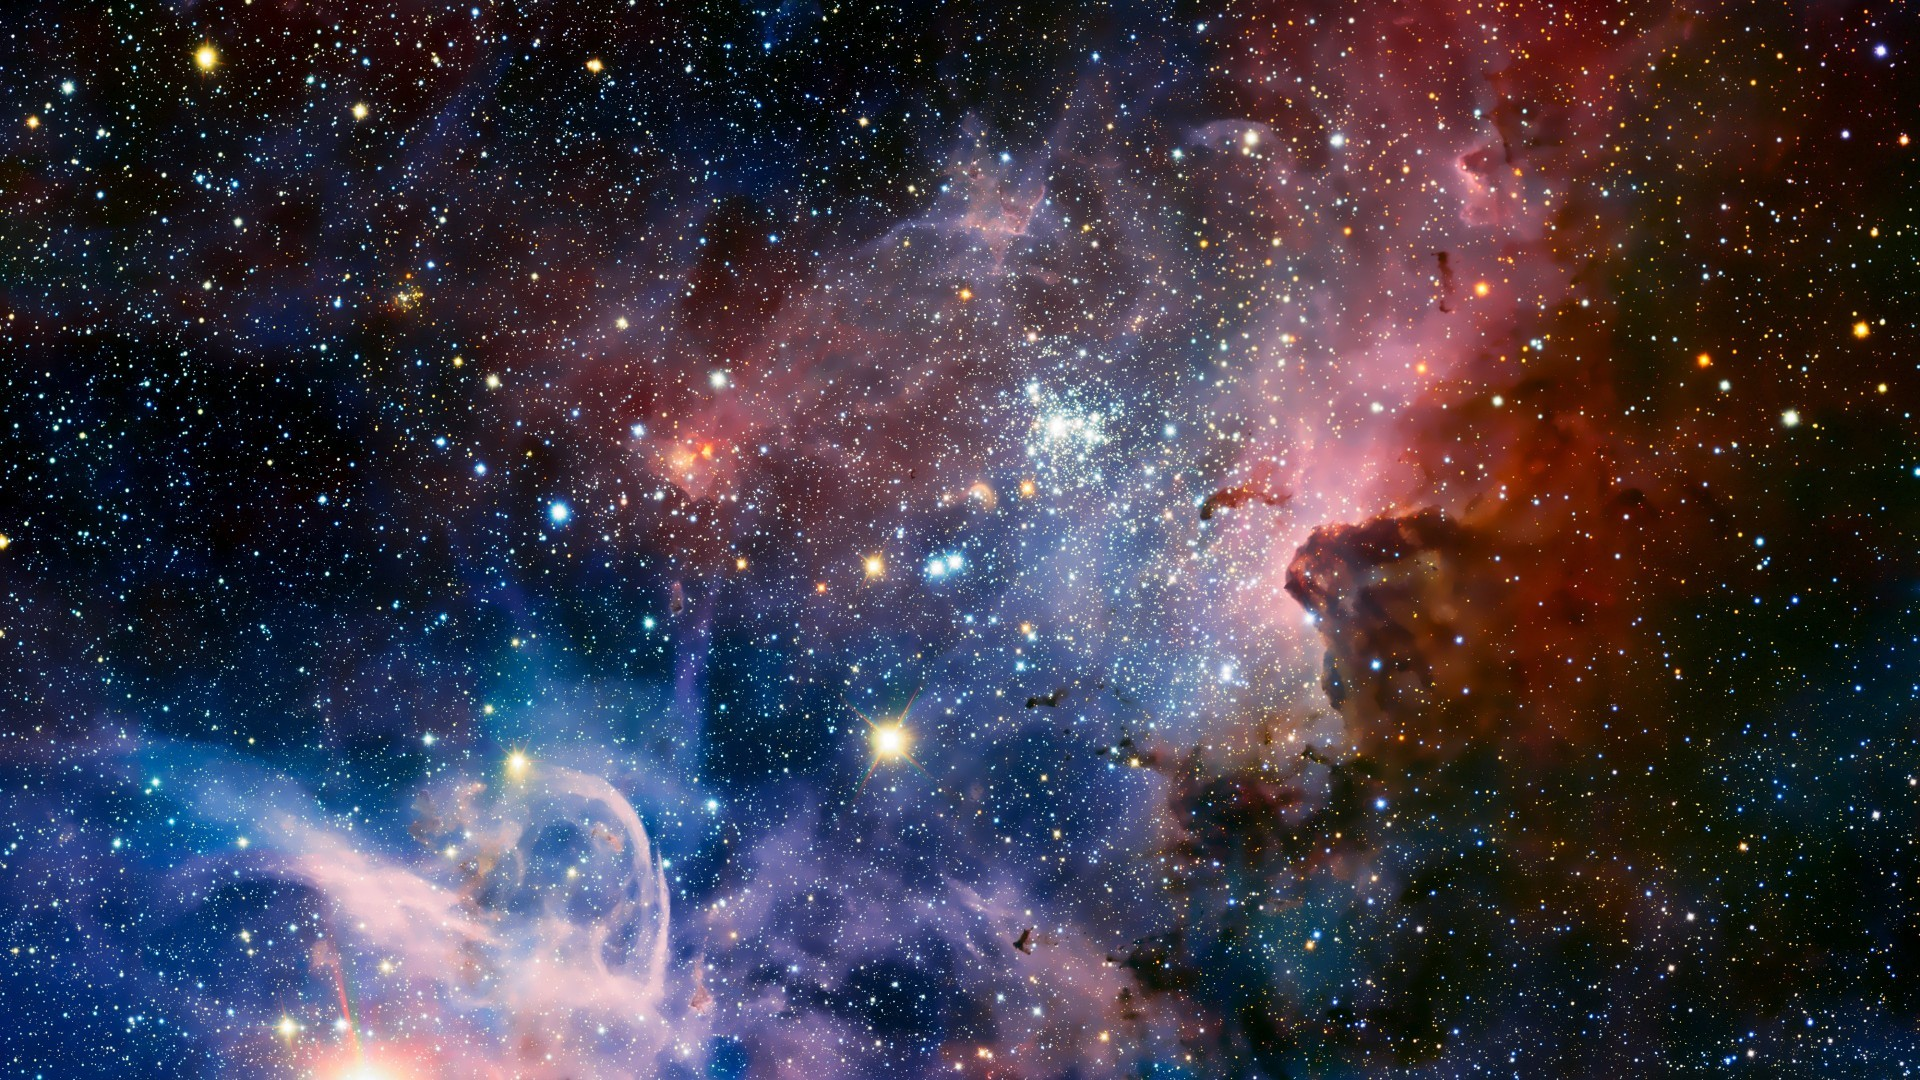 Hubble Space Telescope Wallpapers 1